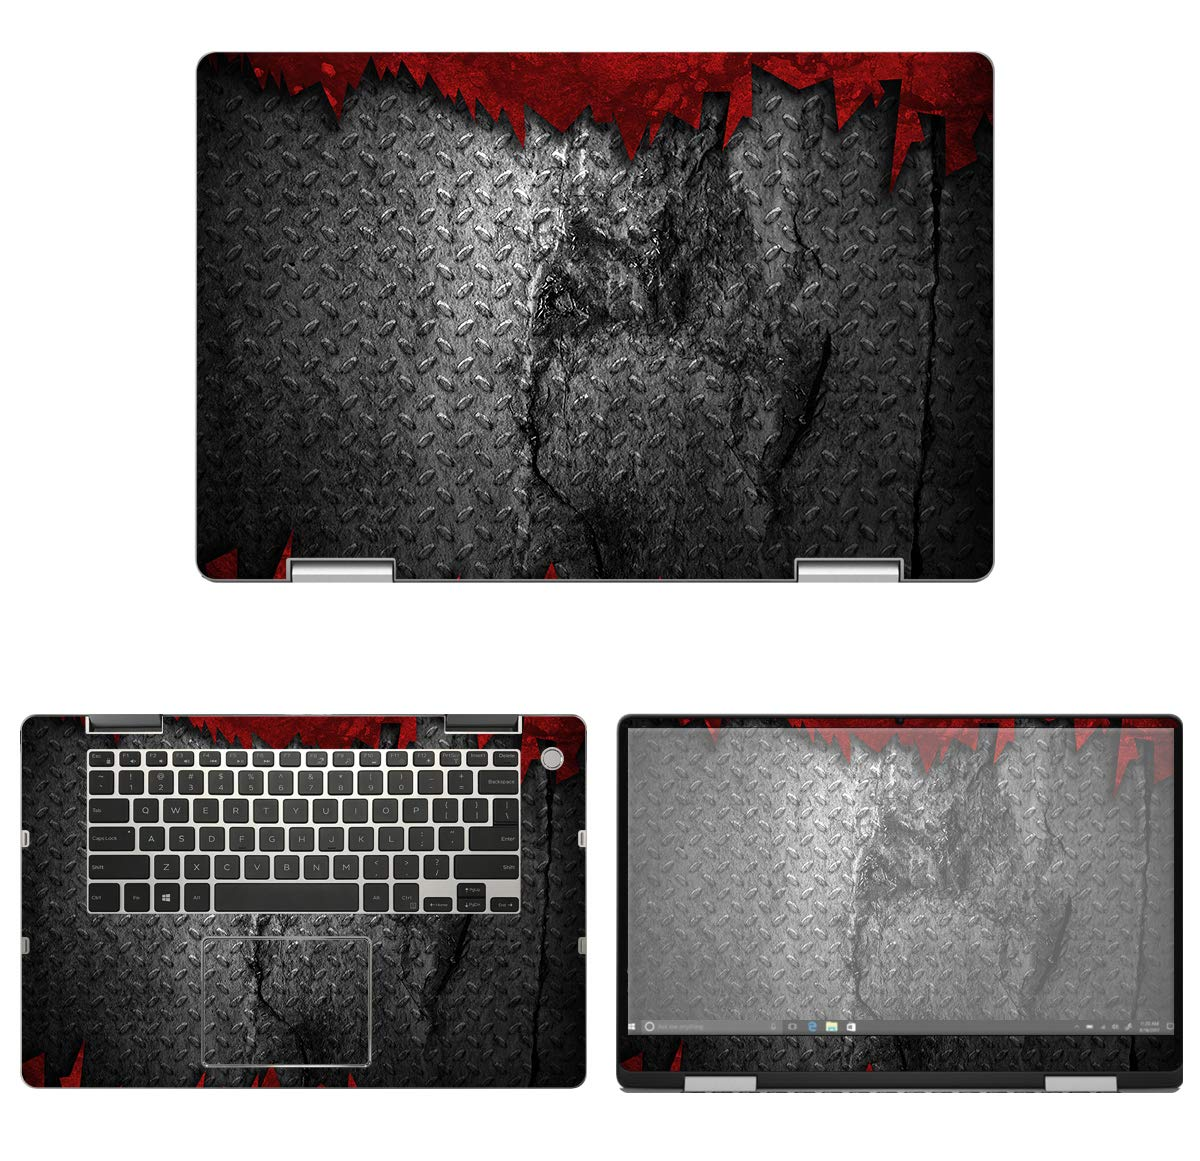 decalrus - Protective Decal Metal Skin Sticker for Dell Inspiron i7586 / 7586 (15.6'' Screen) case Cover wrap DEinspiron15_I7586-112 by decalrus (Image #1)